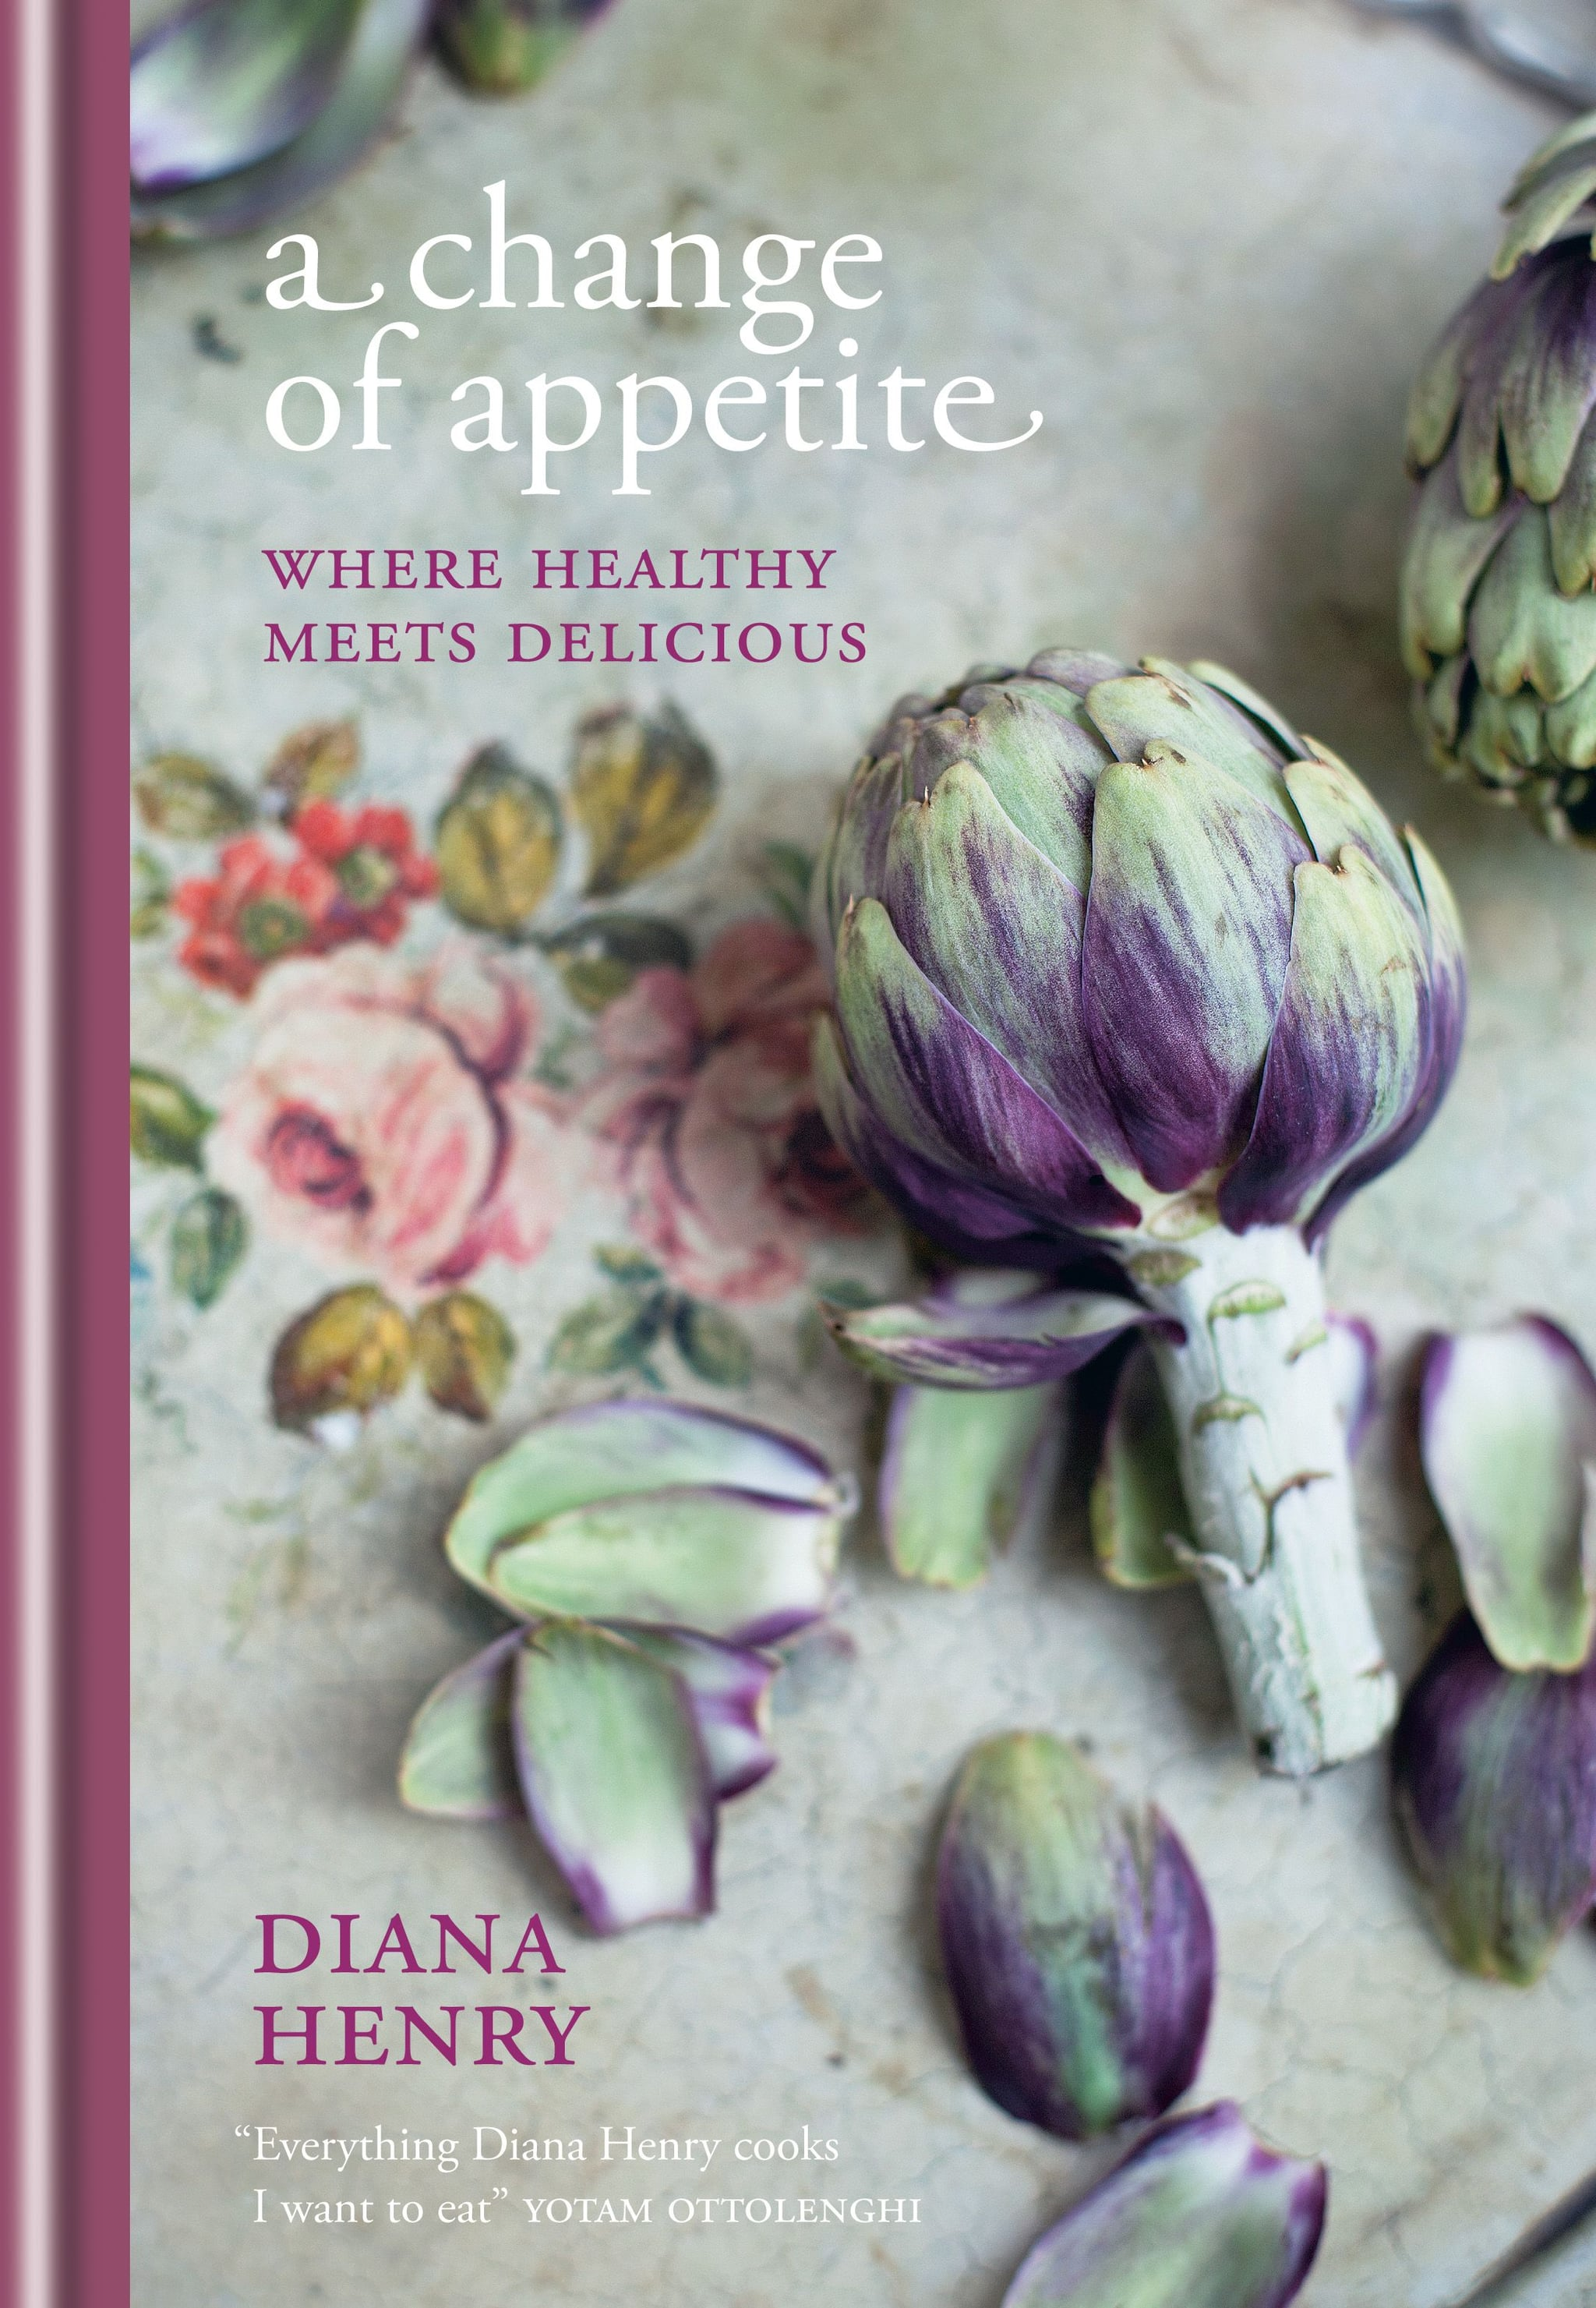 Diana Henry's A Change of Appetite